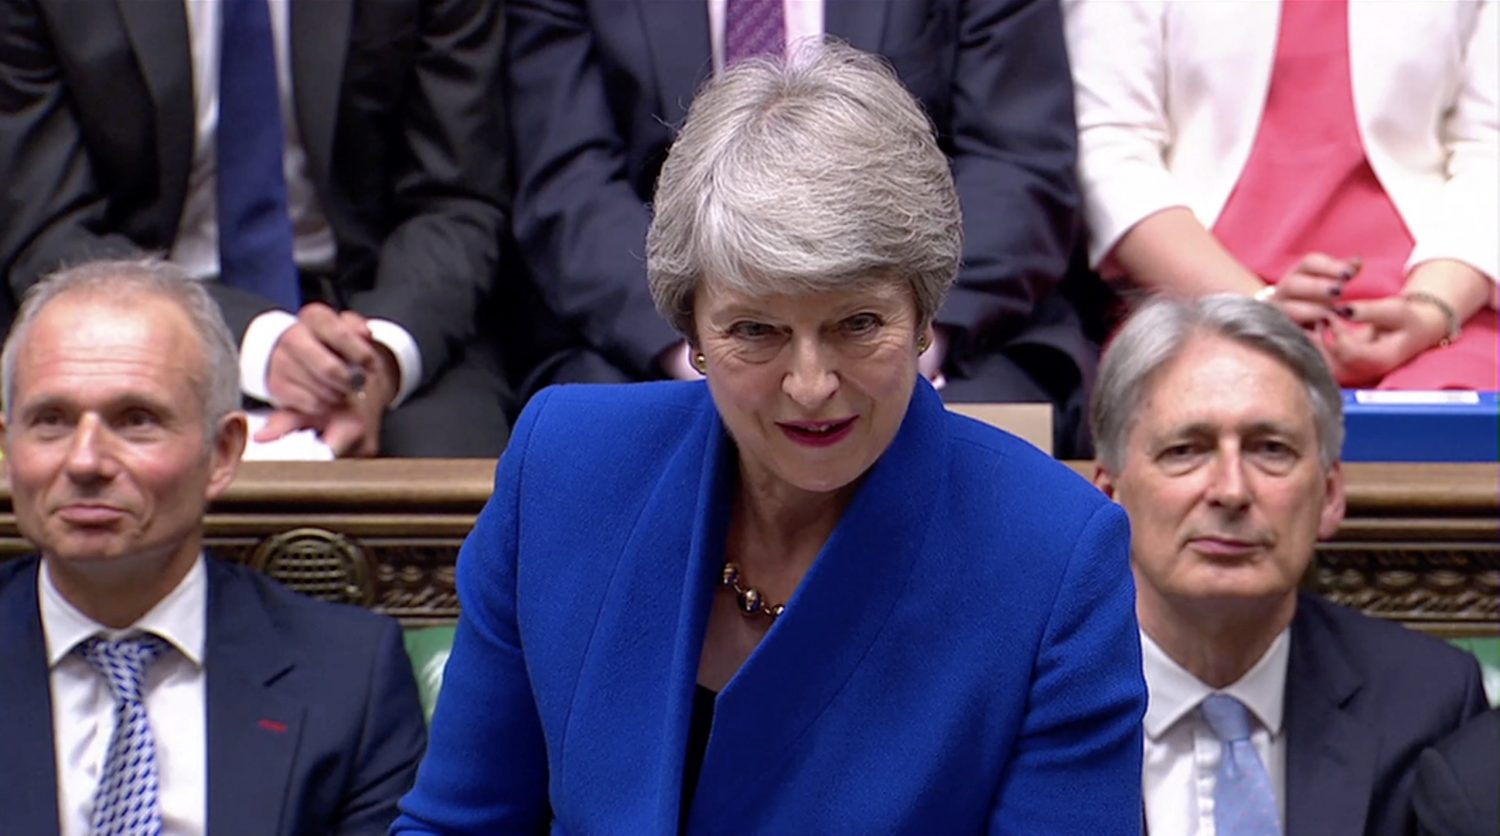 British Prime Minister Theresa May takes questions in Parliament on her last day in office as Prime Minister in London, Britain July 24, 2019, in this screen grab taken from video. Reuters TV via REUTERS?